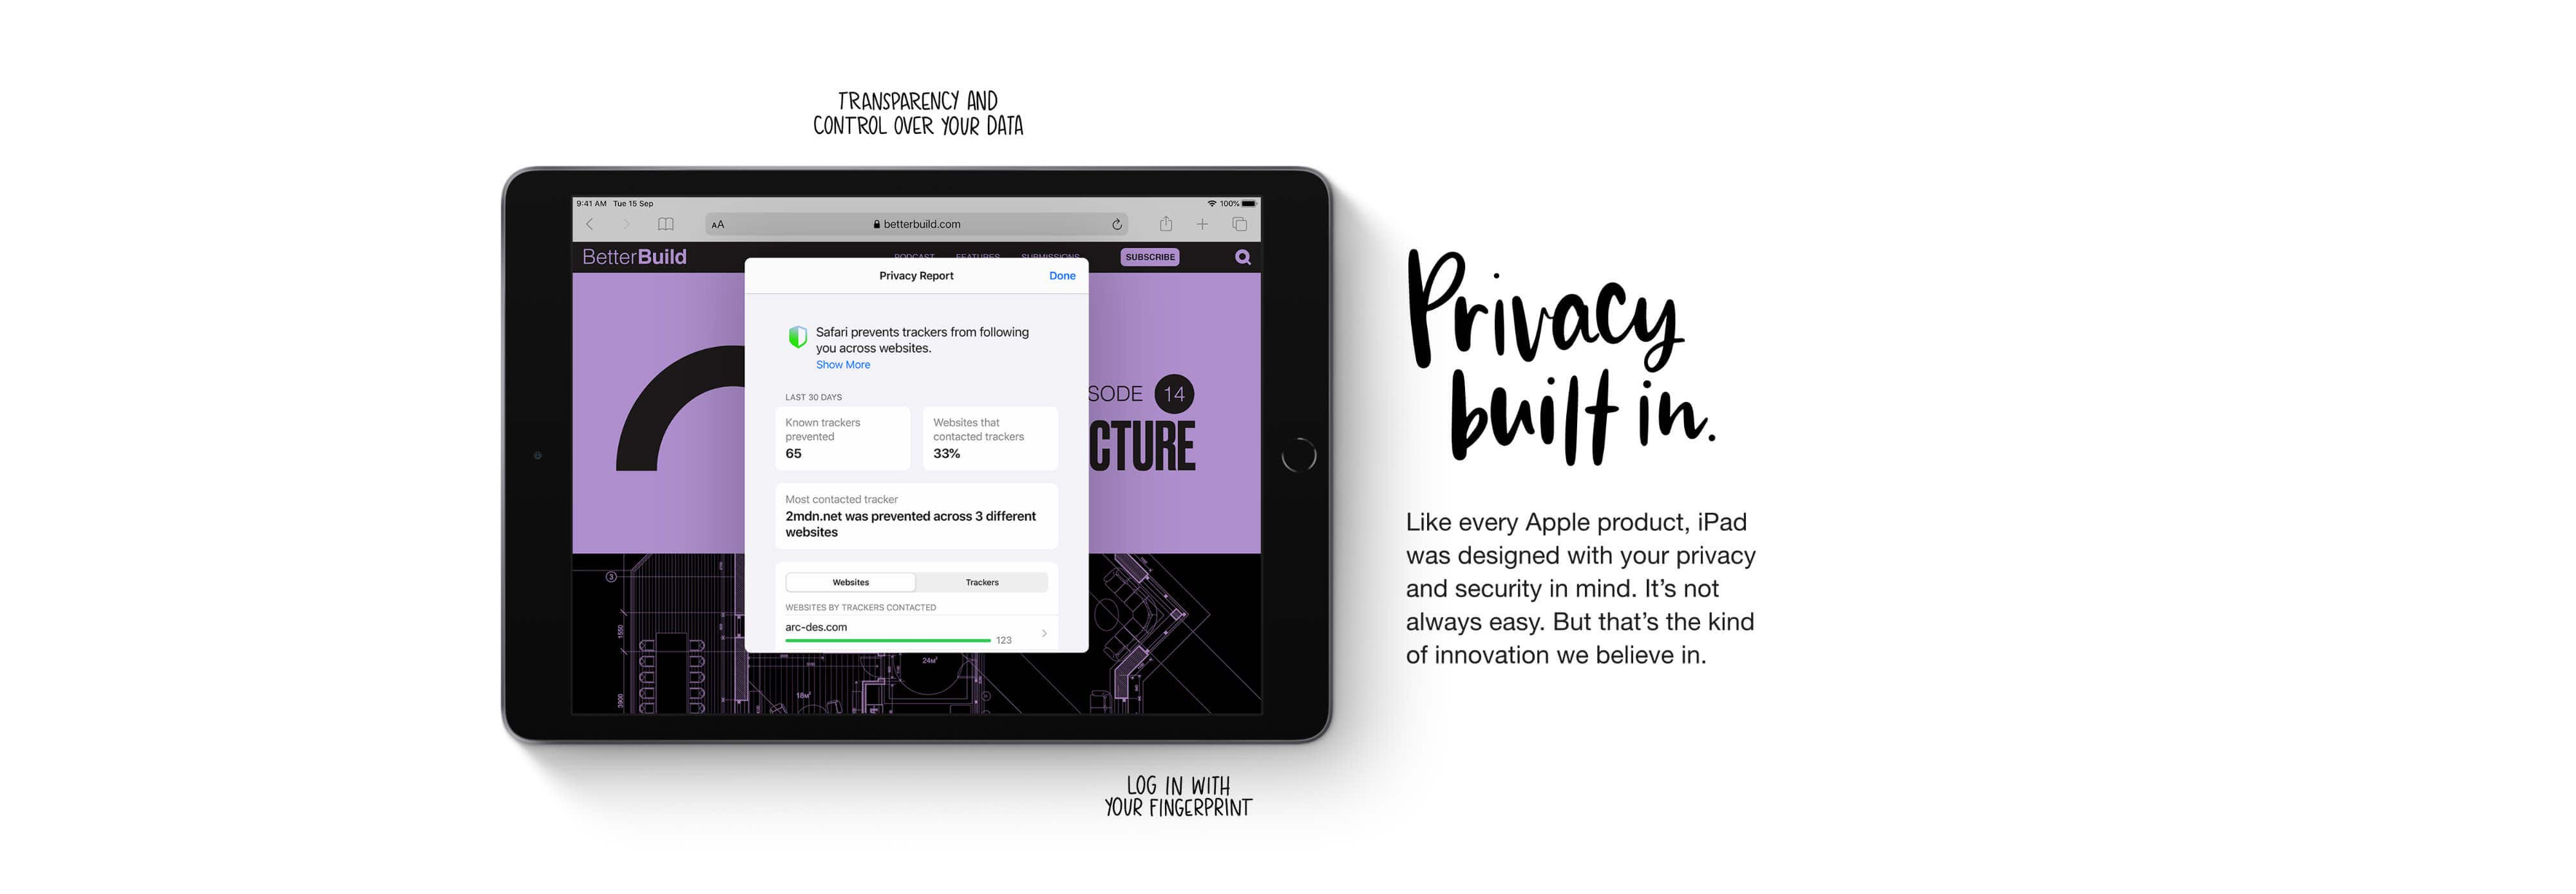 iPad 8th Generation -  Privacy built in - Log in with your fingerprint.